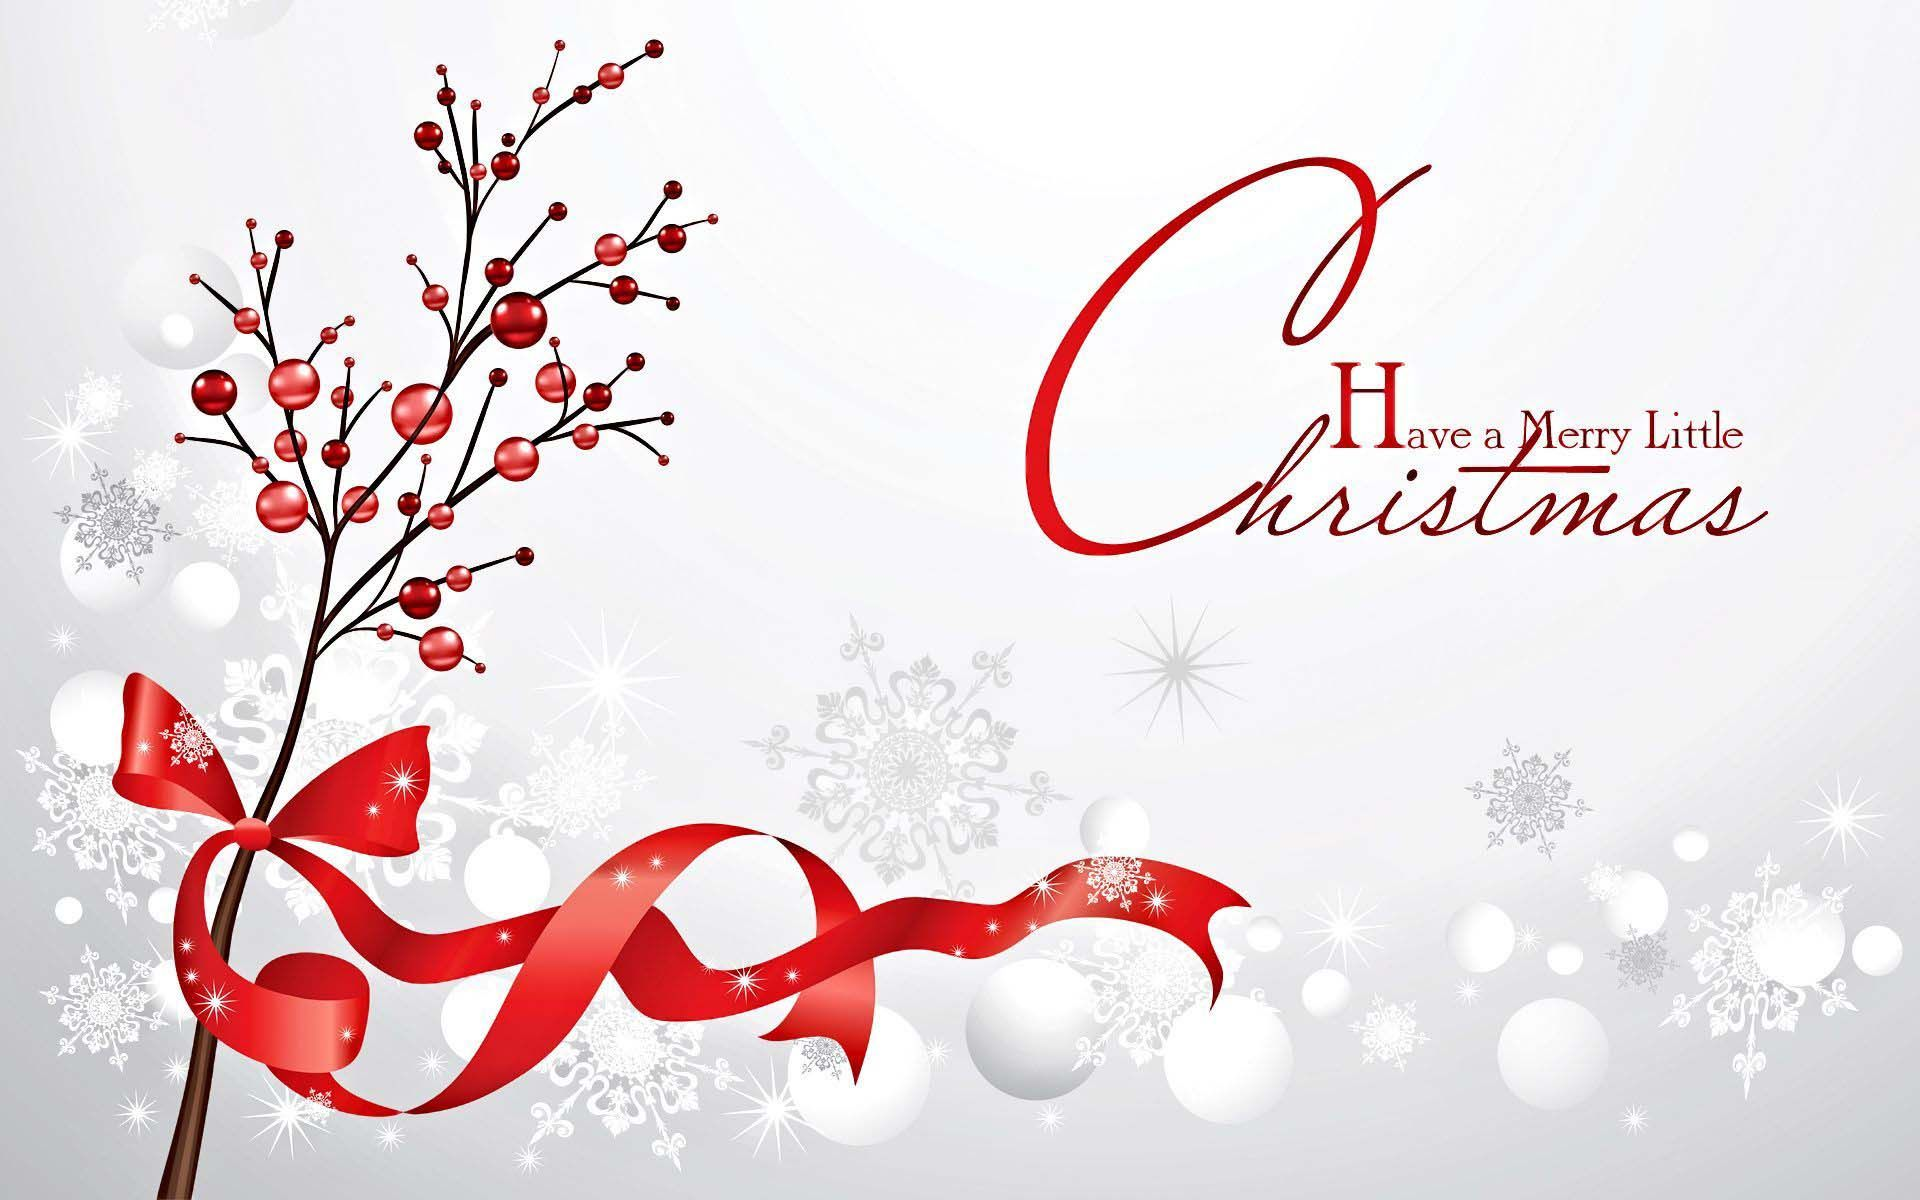 Merry Christmas Hd Wallpaper Free Download For Laptop Or Pc